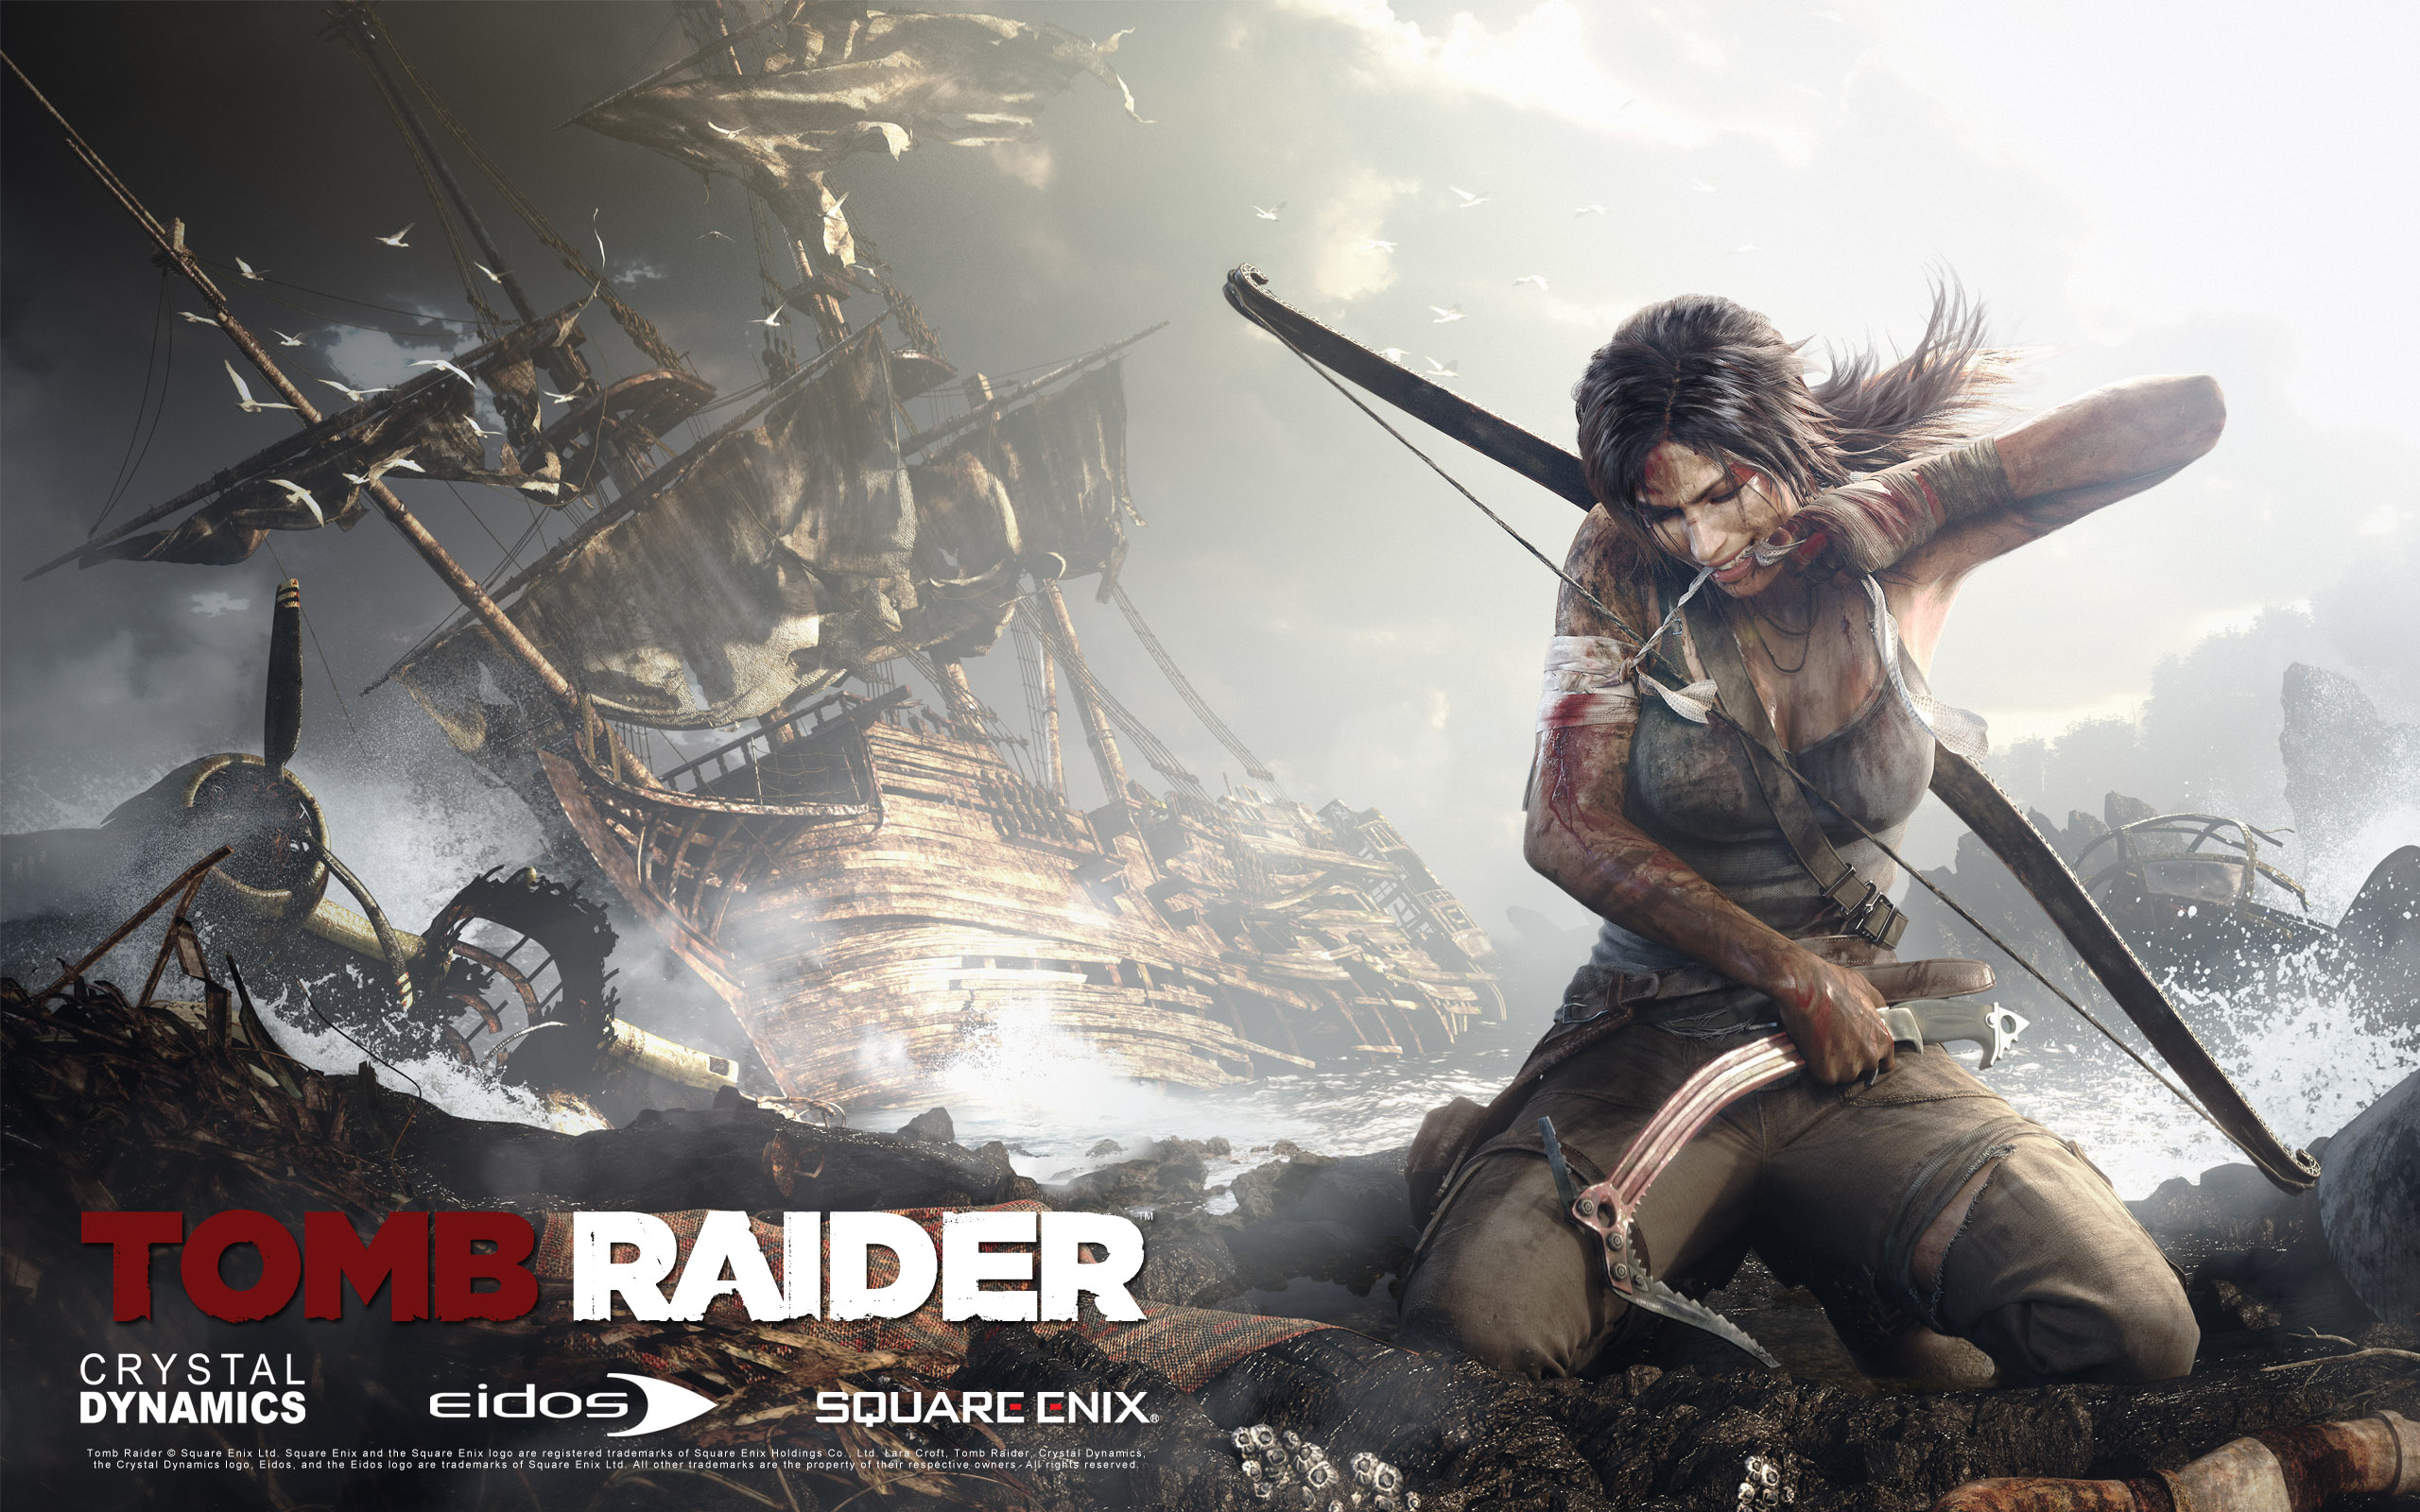 Top 5 best stories in video games 2013 so far geeked out nation it was a tough decision putting one of the best stories ive played in the number 3 spot in this list tomb raider was a game that was near perfection publicscrutiny Images